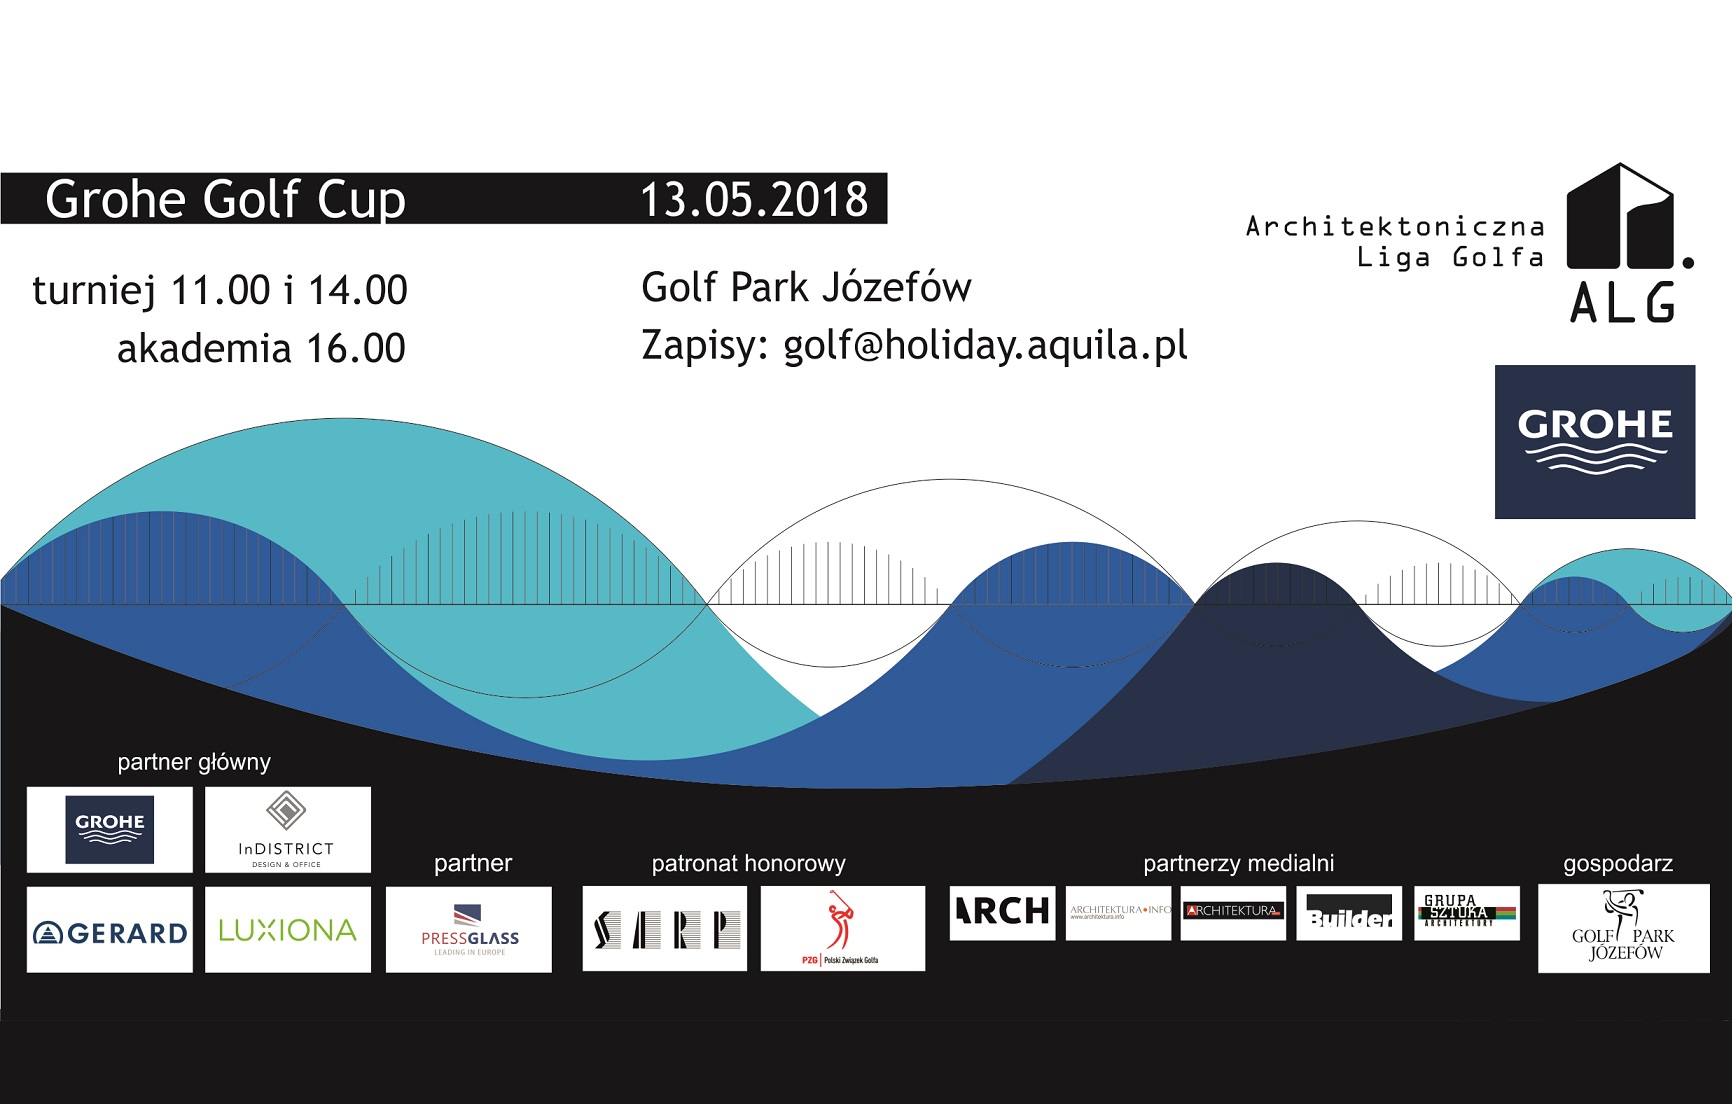 GROHE GOLF CUP